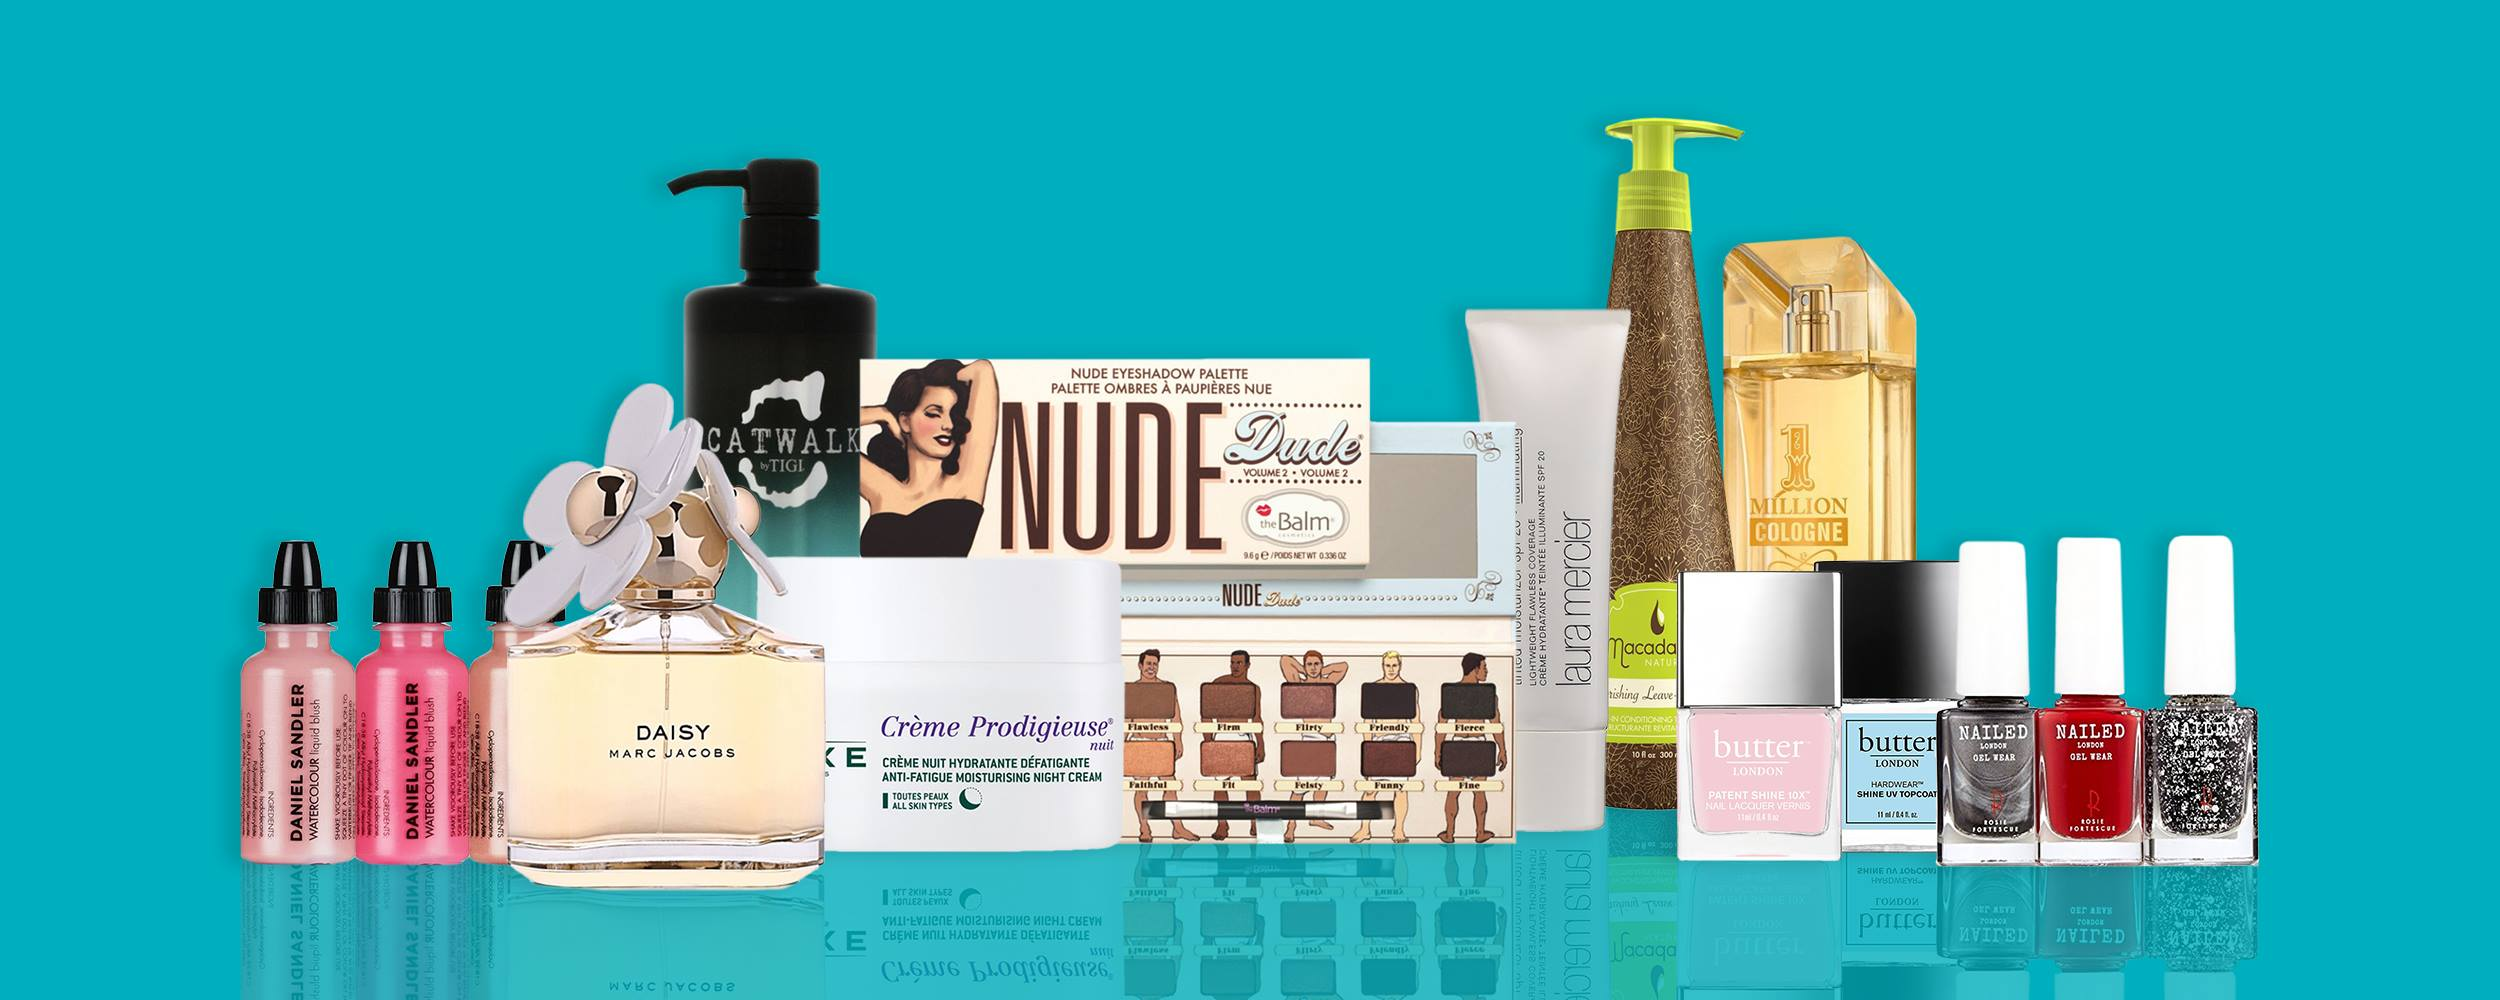 About The Beauty Store Homepage